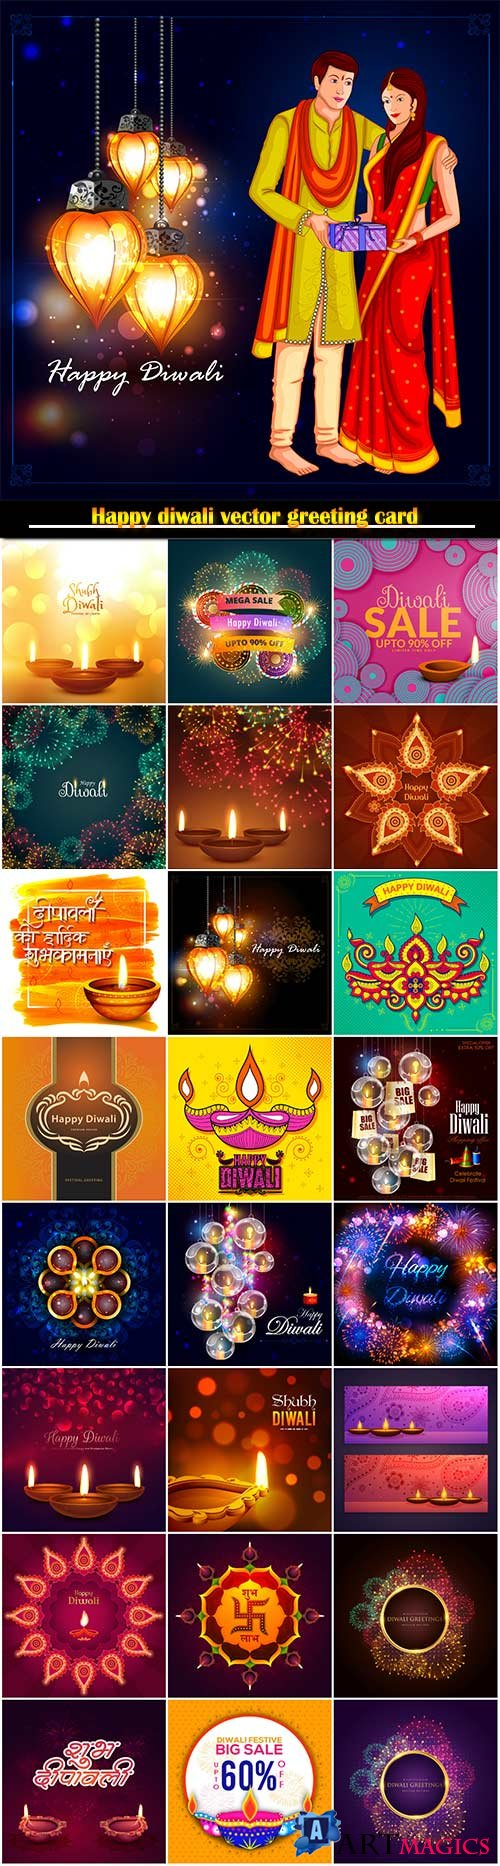 Happy diwali vector greeting card # 3